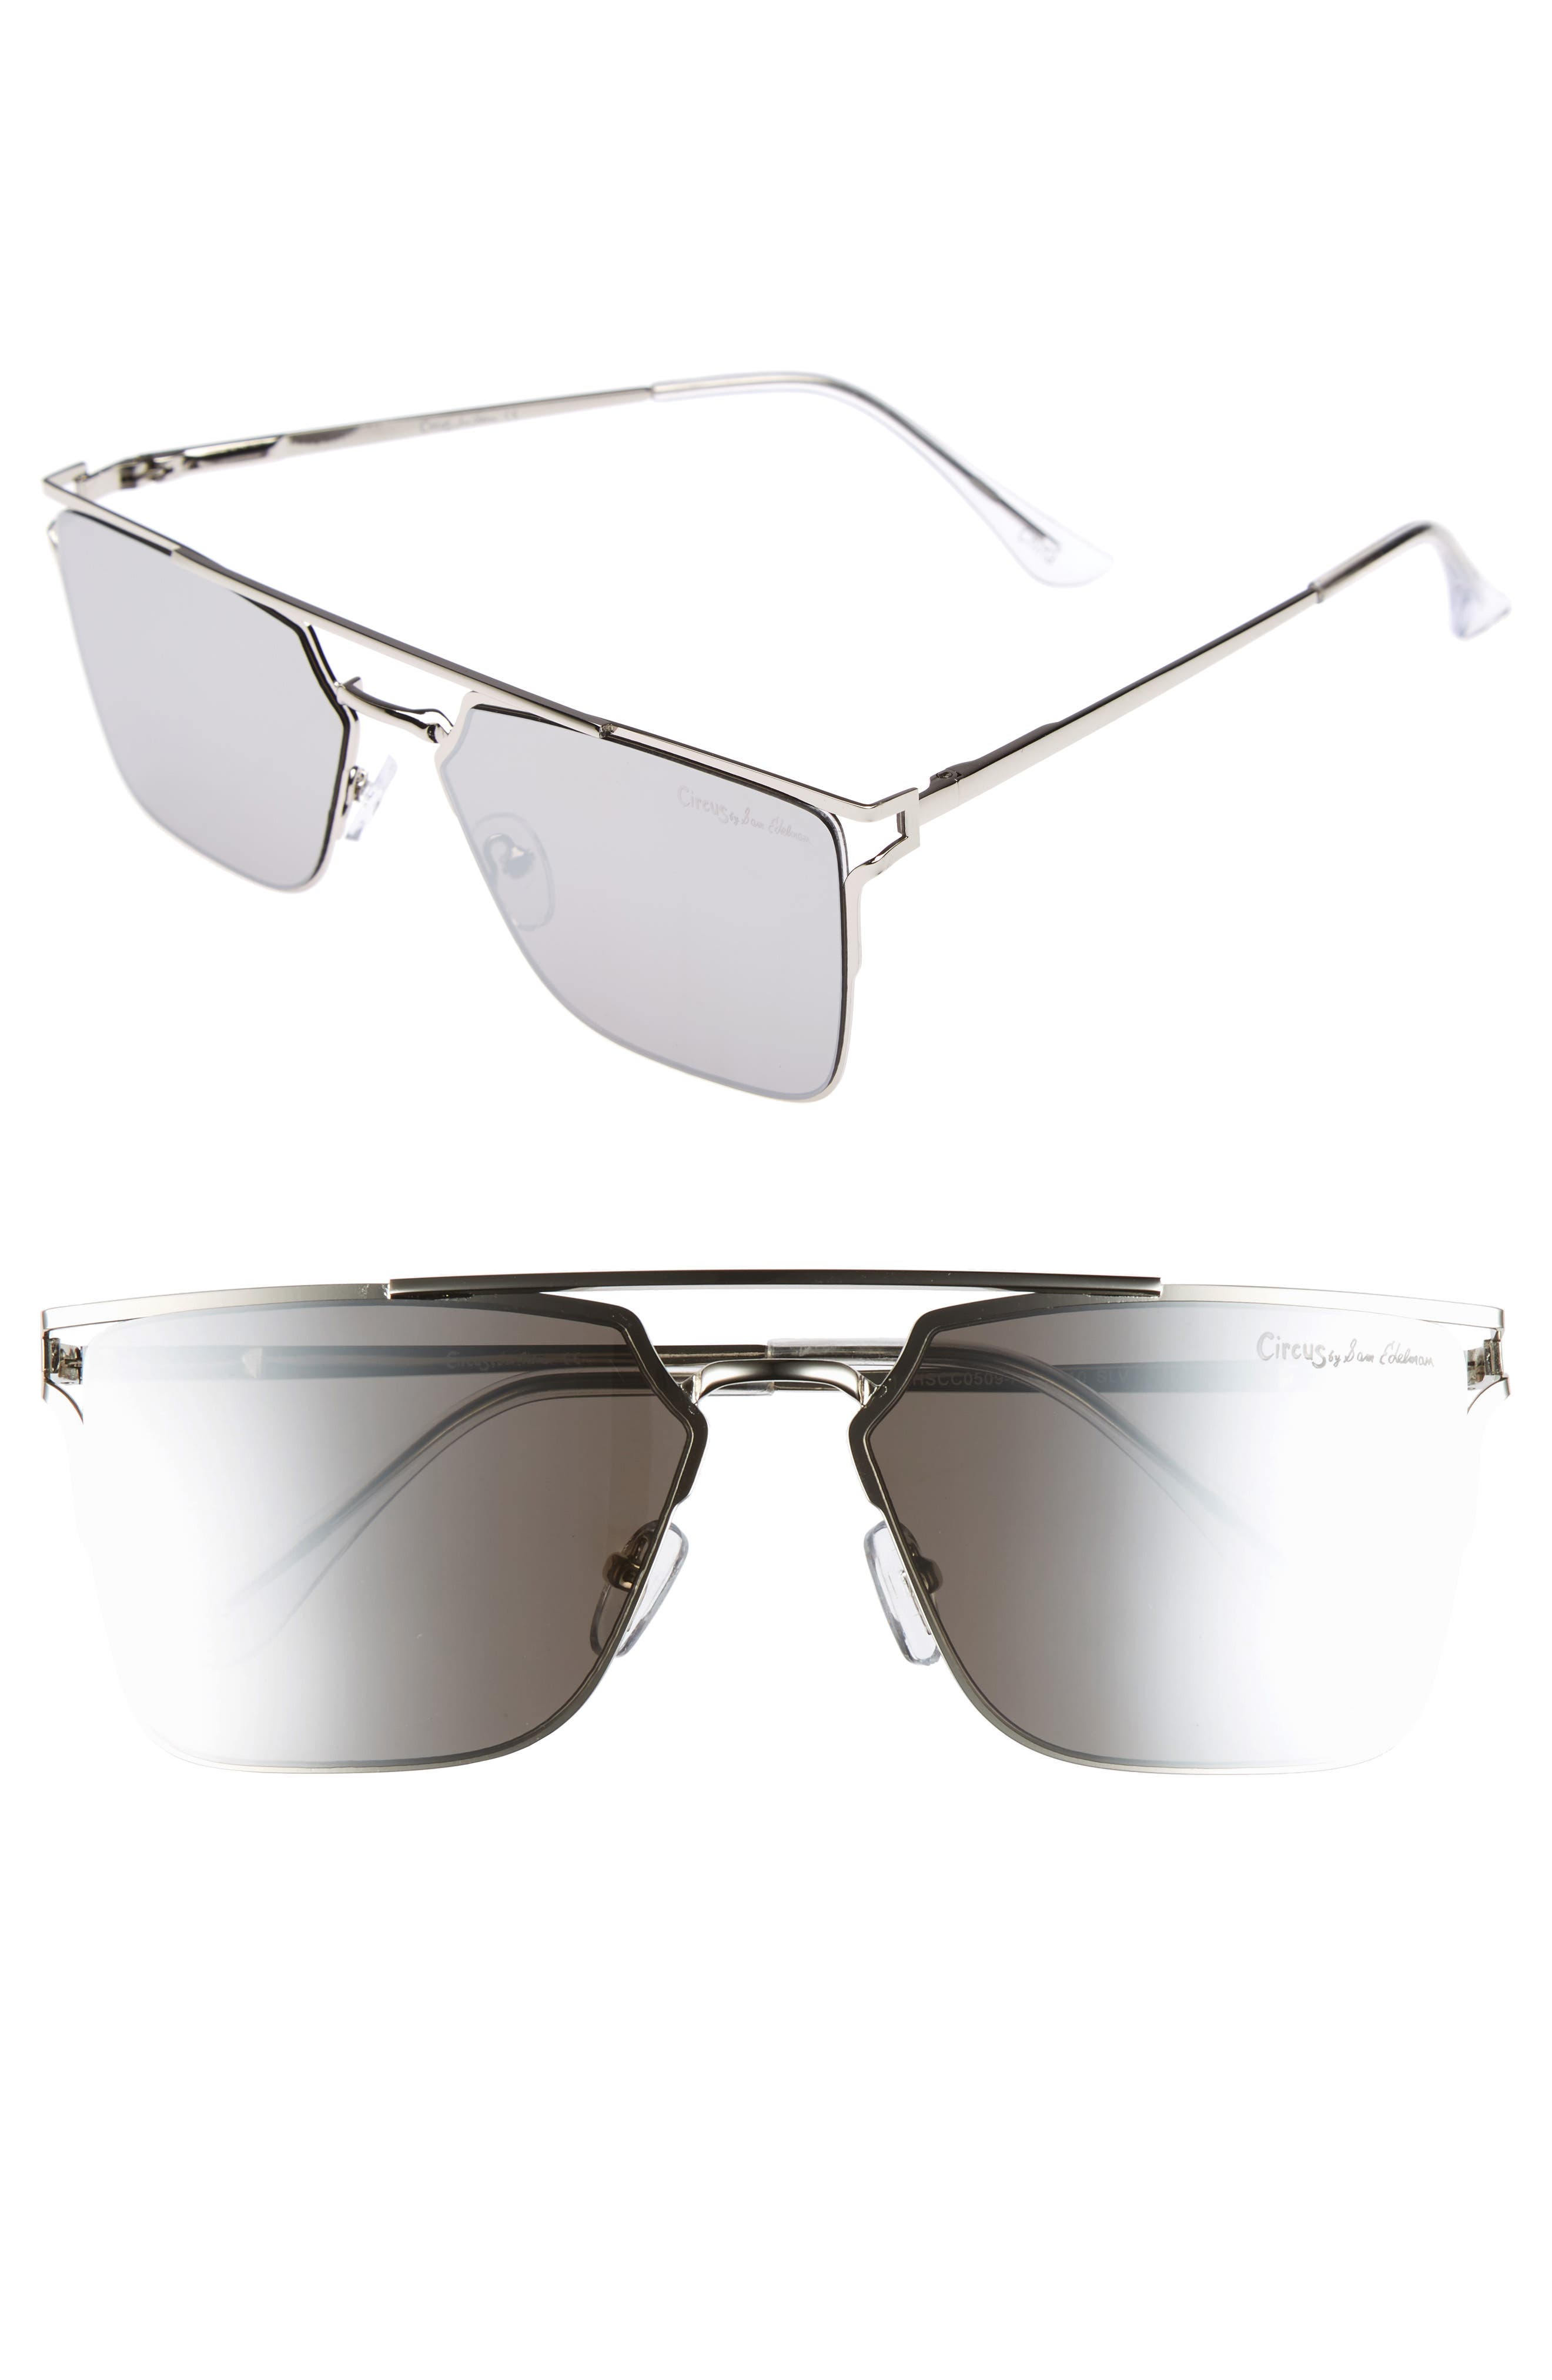 56mm Flat Top Sunglasses,                         Main,                         color, Silver